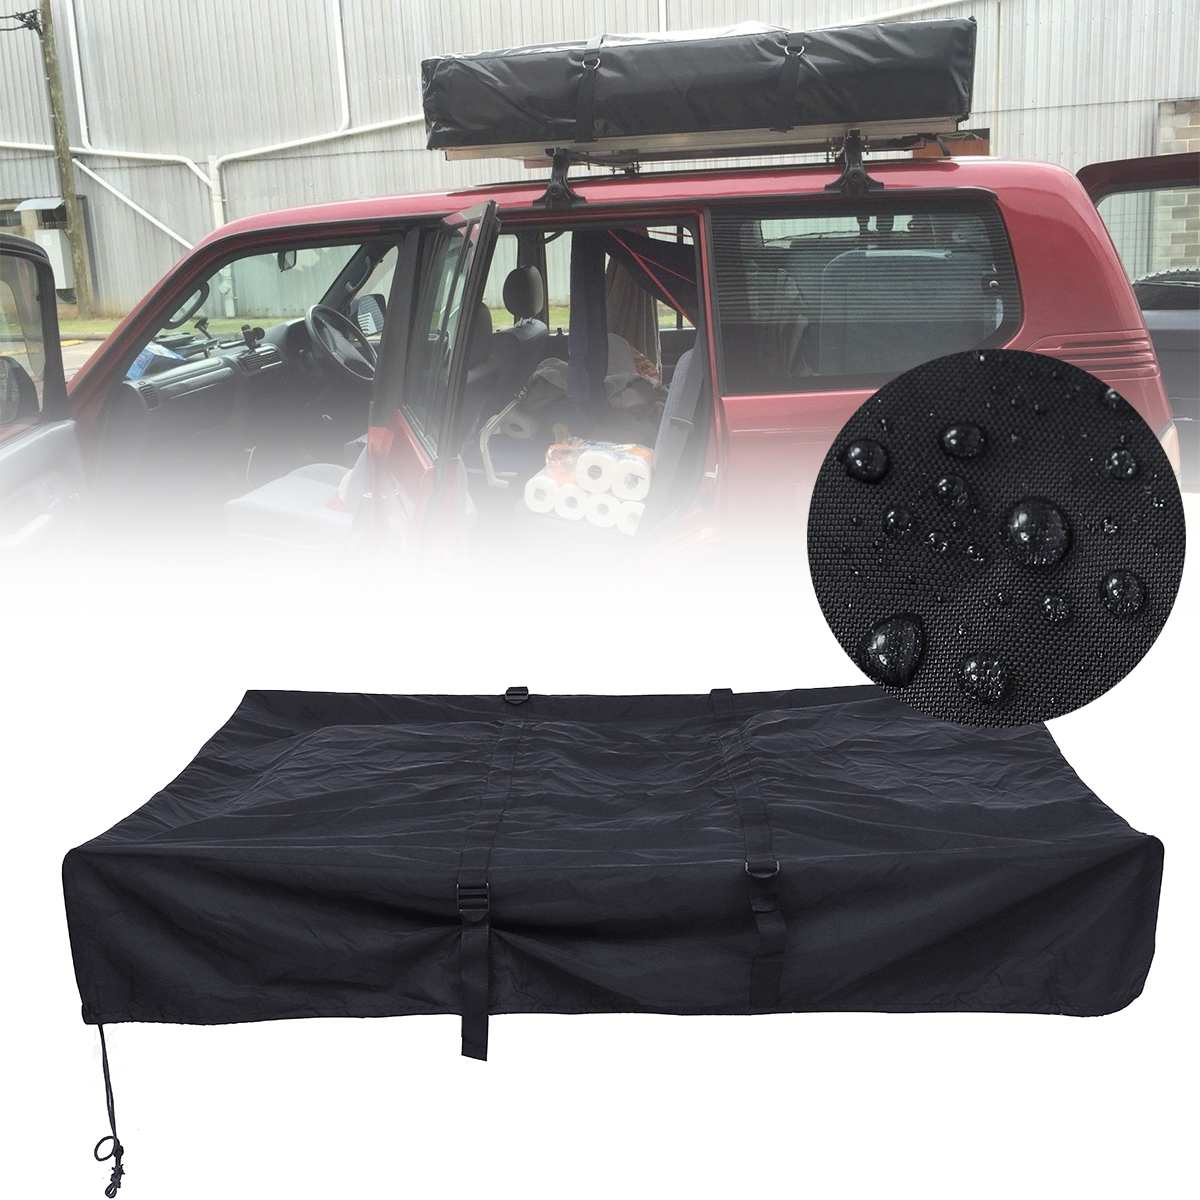 Portable ClothesLine Hanger for Awning Roof Top Tent Rack Camper Trailer Camping